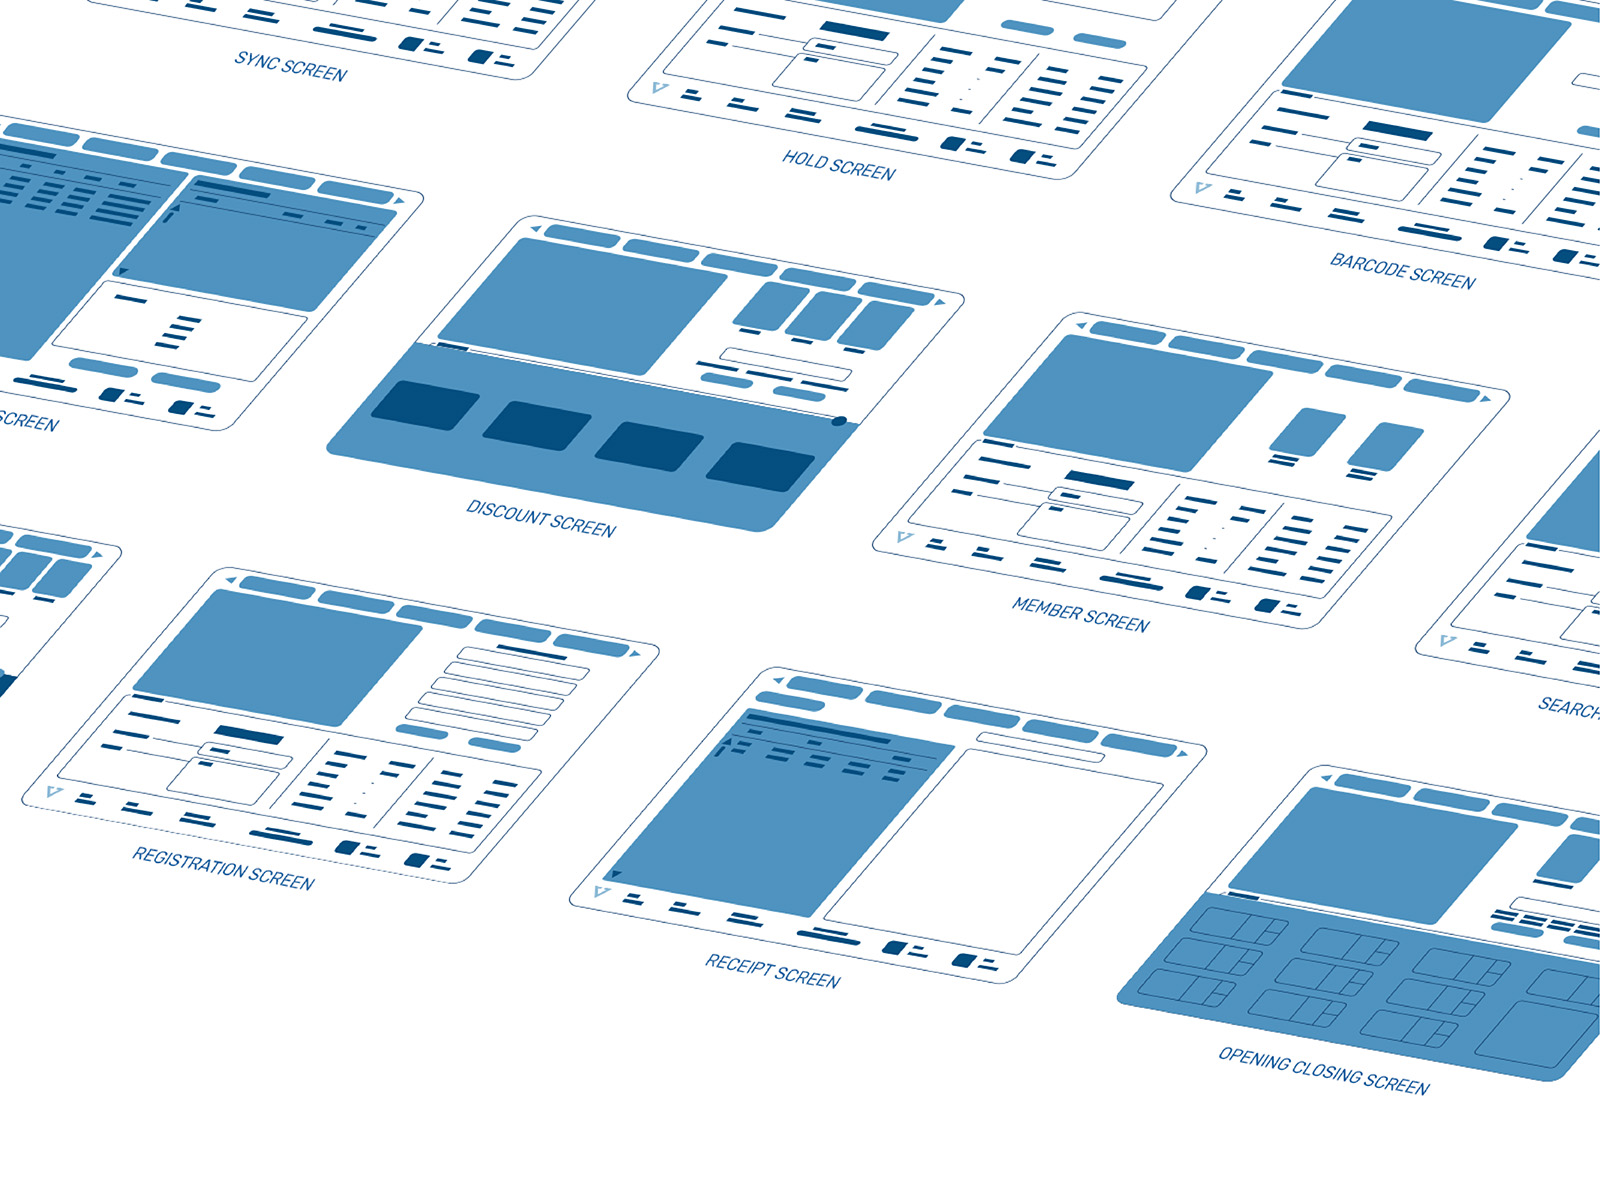 Vipos POS system product user interface and user experience wireframes development